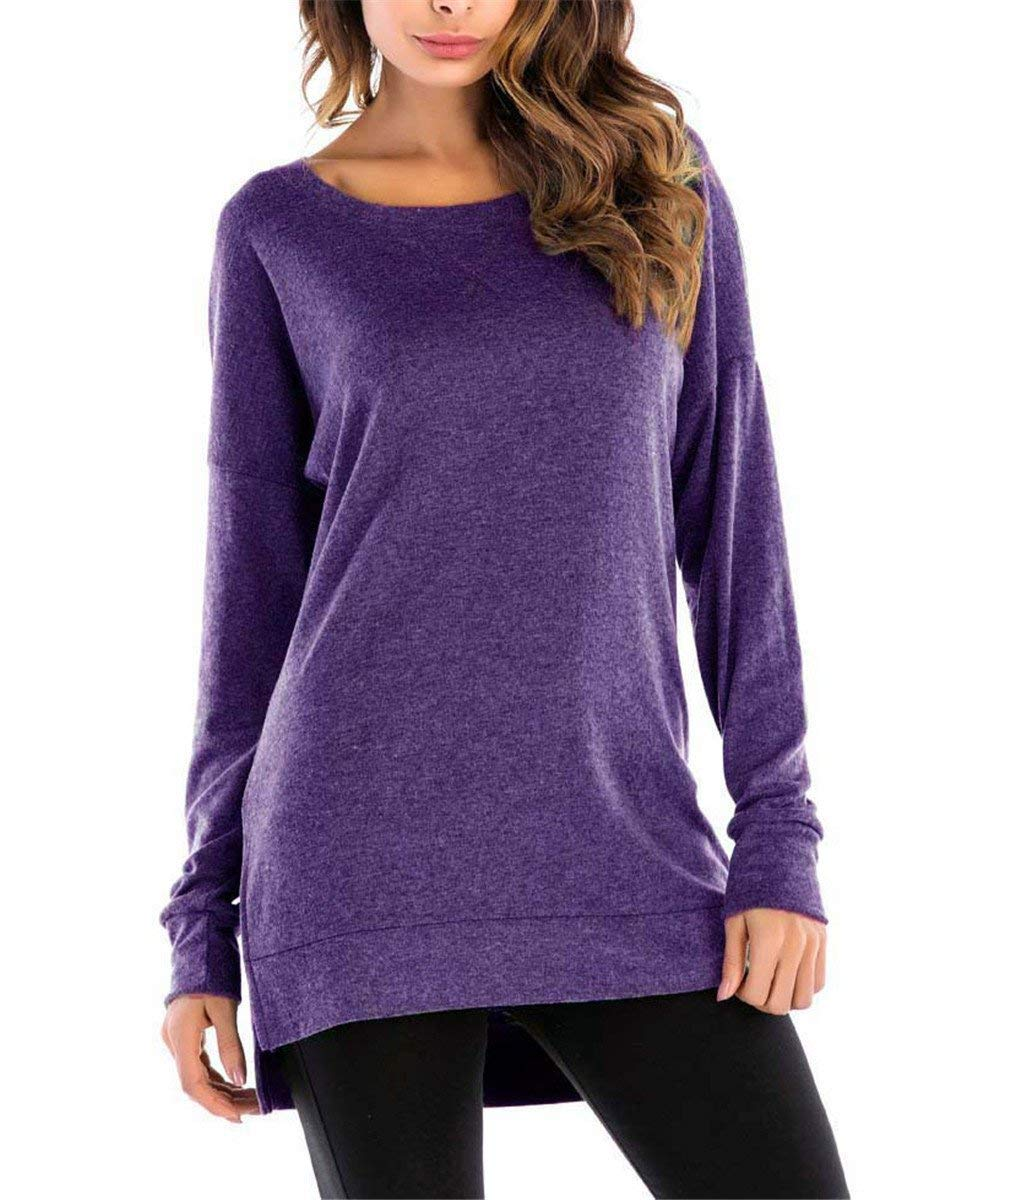 Kool Classic Women's Casual Long Sleeve Crewneck Side Split Loose Pullover Tunic Tops Purple X-Large